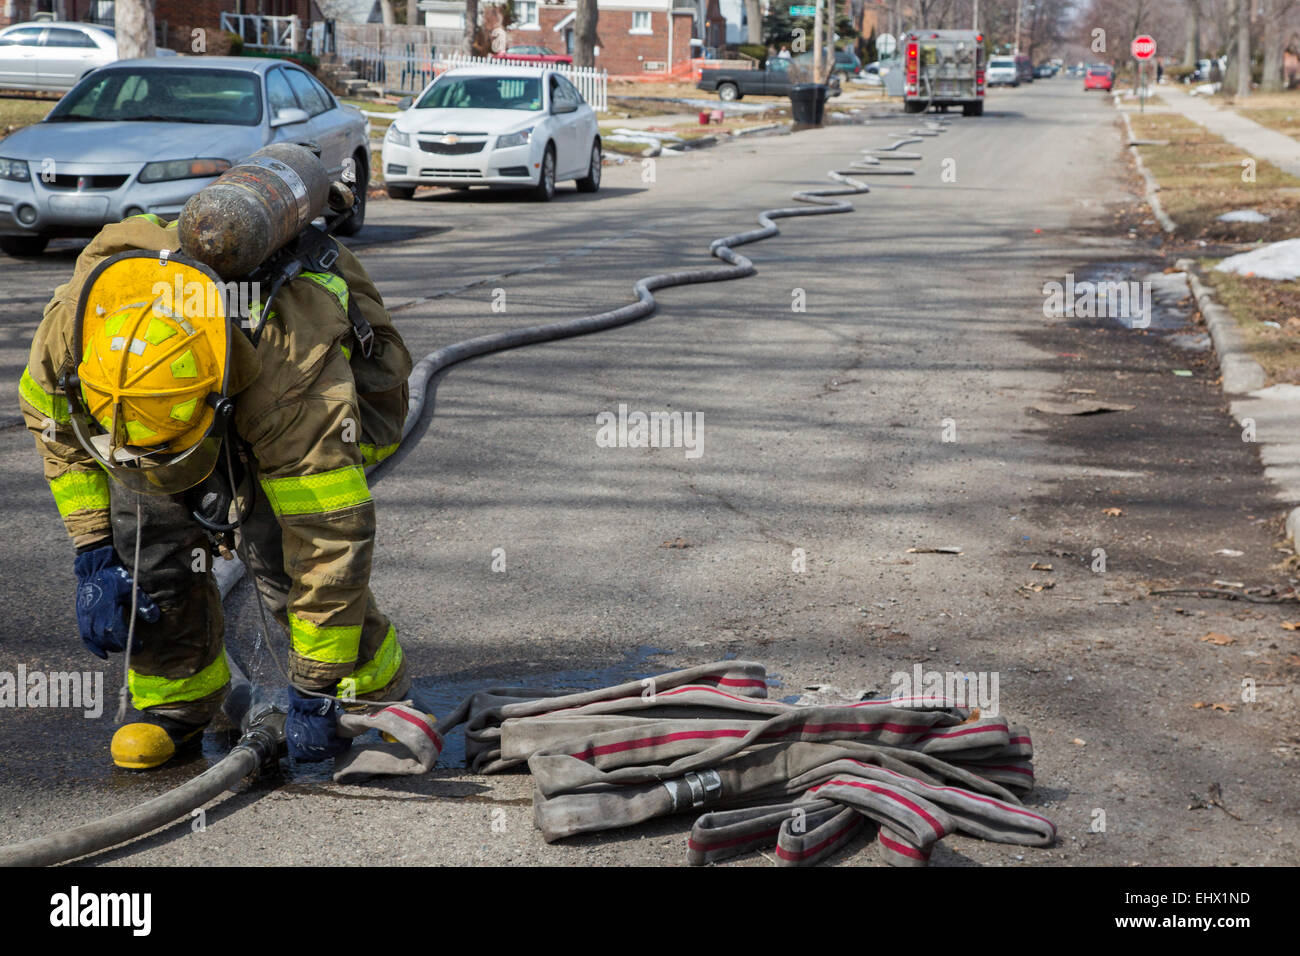 Detroit, Michigan - A firefighters connects hoses while fighting a fire which destroyed a vacant home in Detroit. - Stock Image